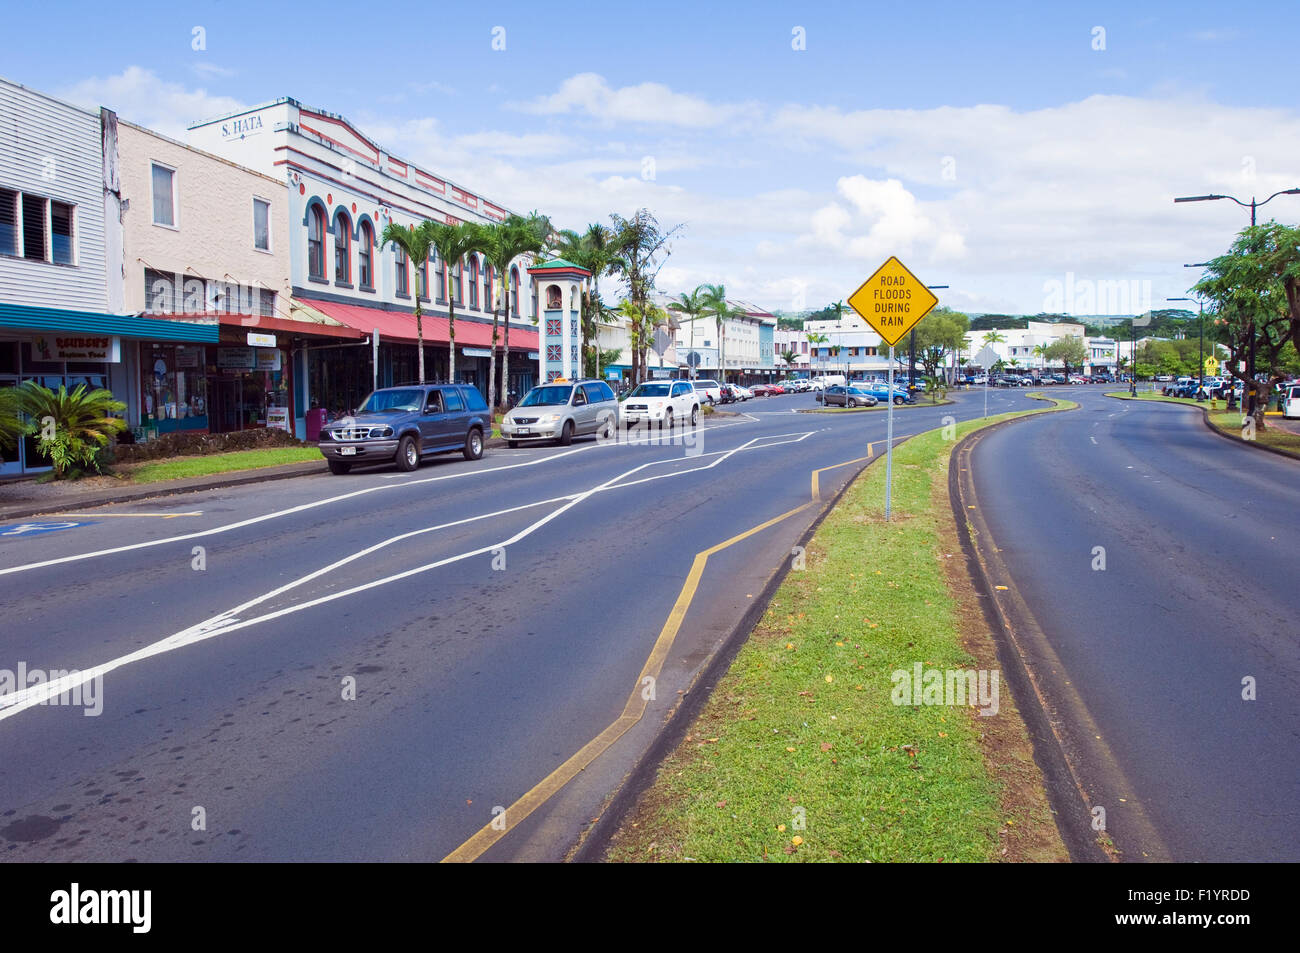 Downtown Hilo looking north along Kamehameha Avenue - Stock Image